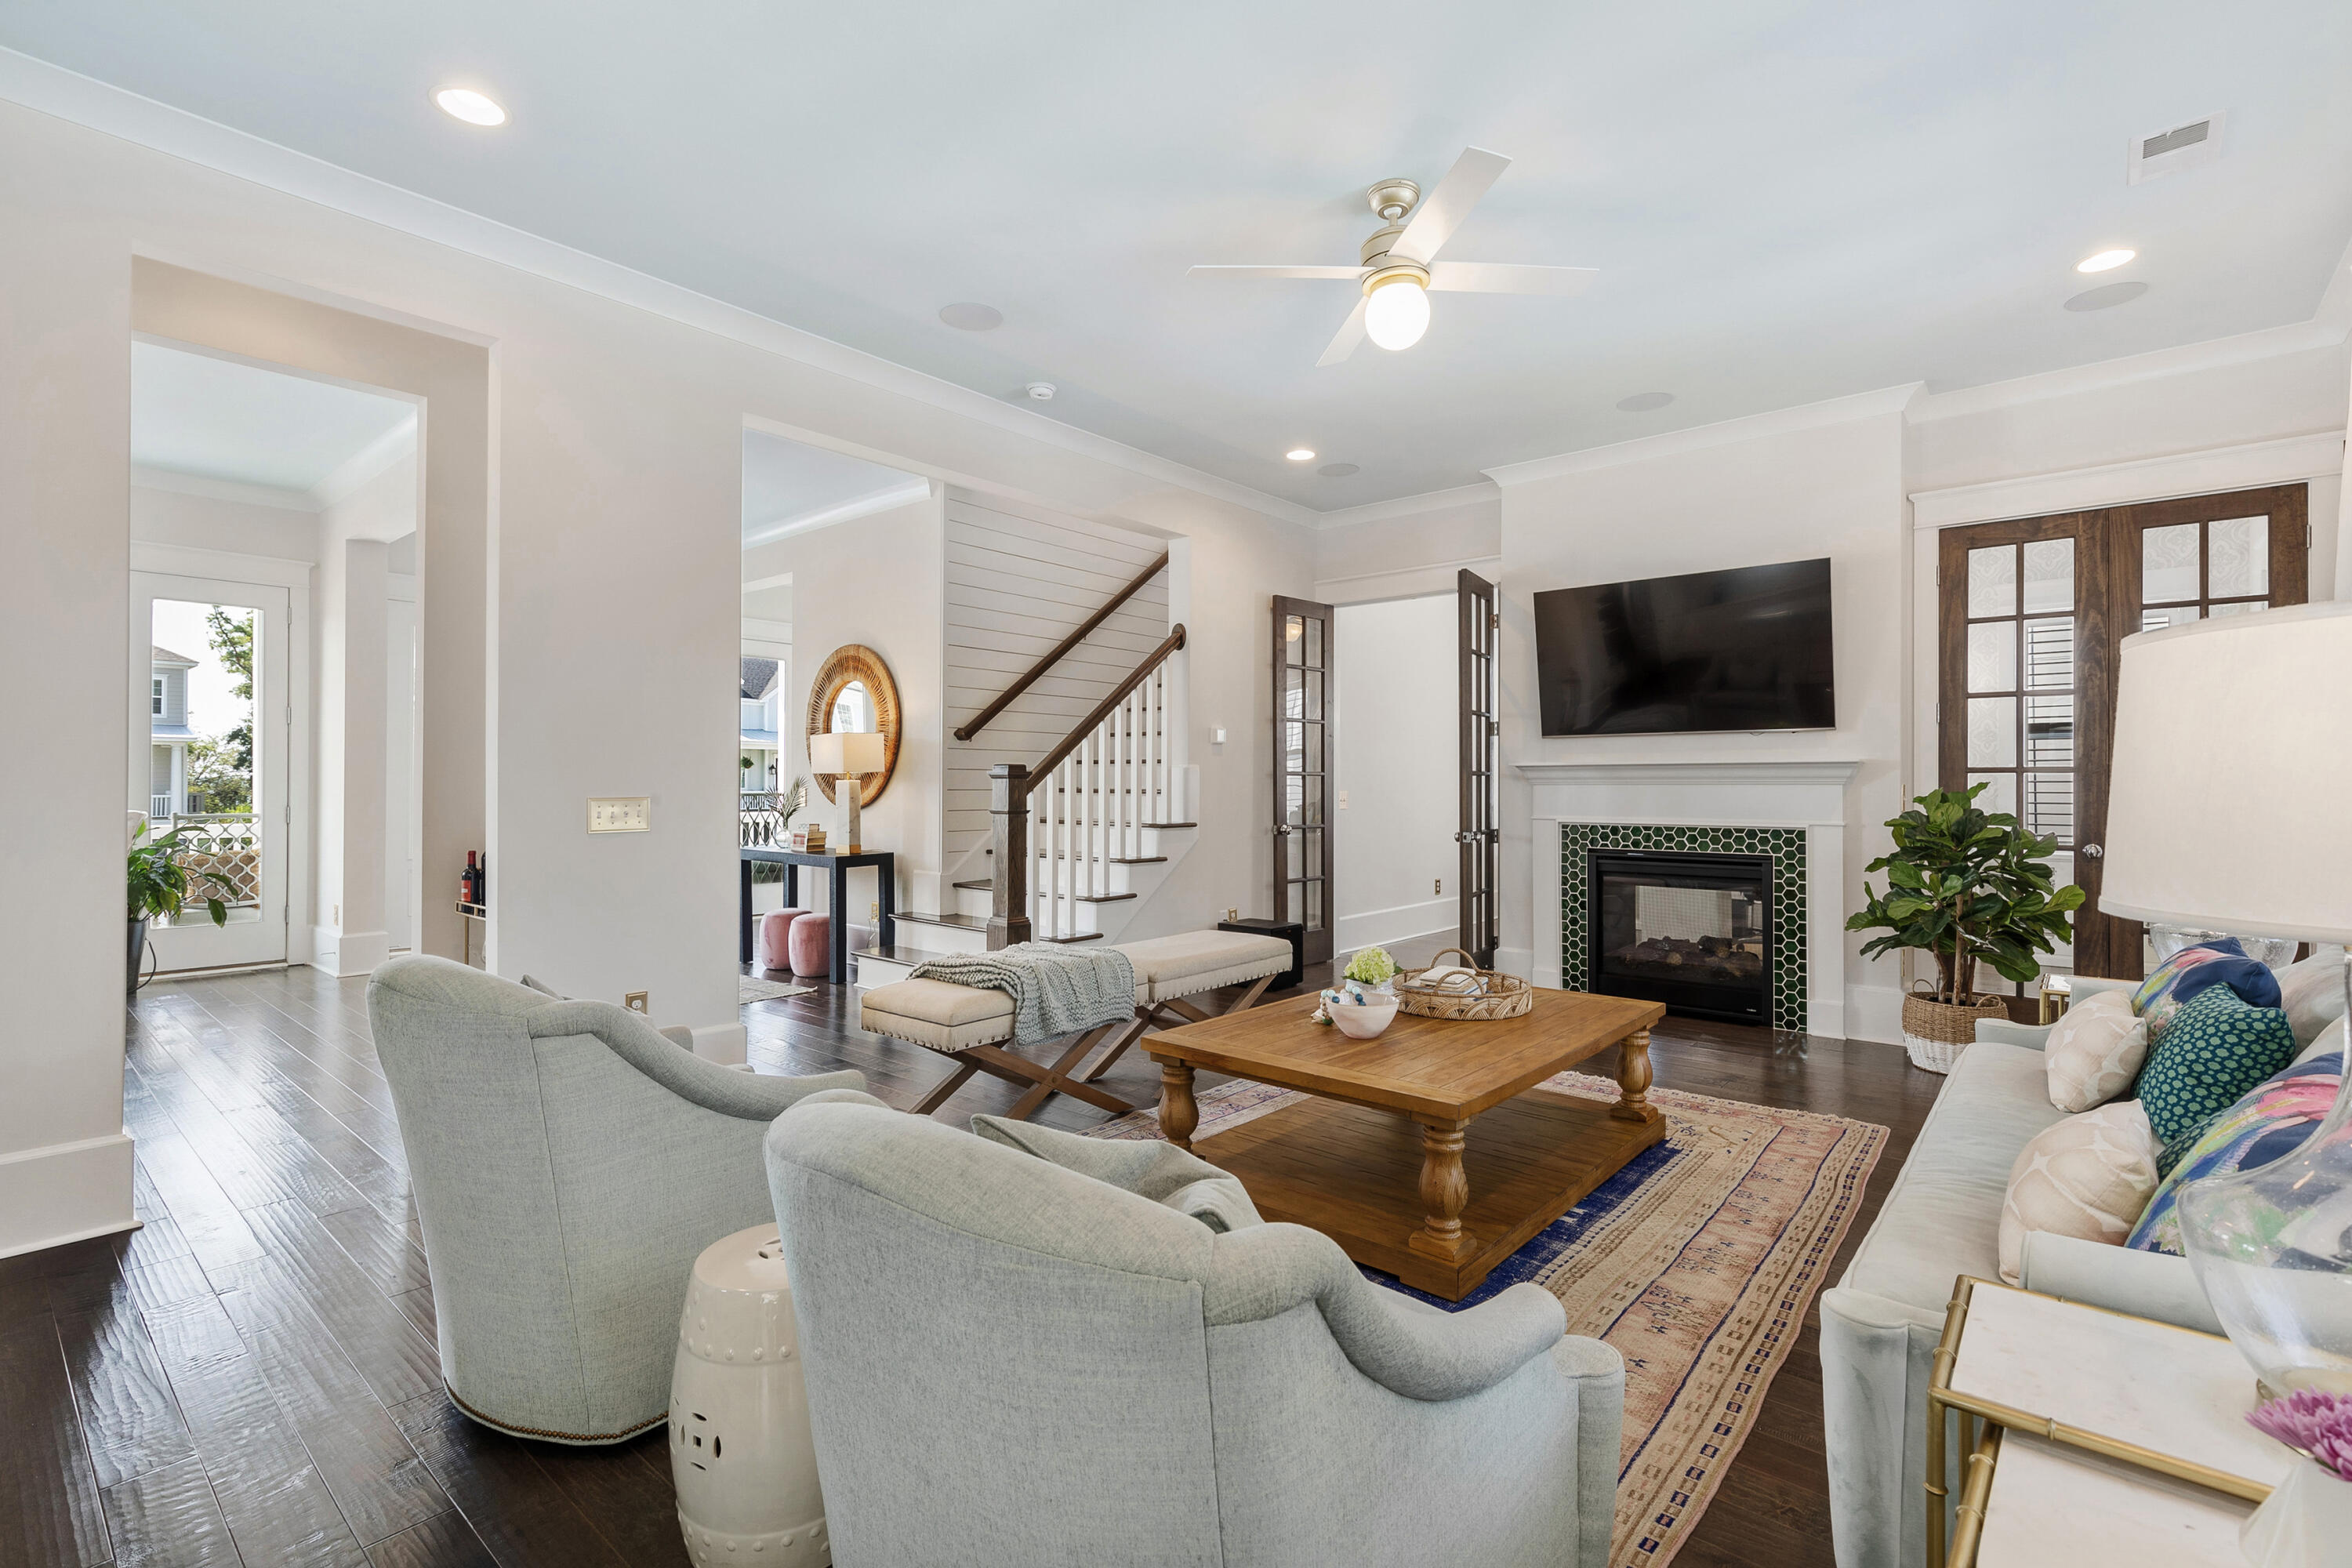 Stratton by the Sound Homes For Sale - 1517 Menhaden, Mount Pleasant, SC - 11